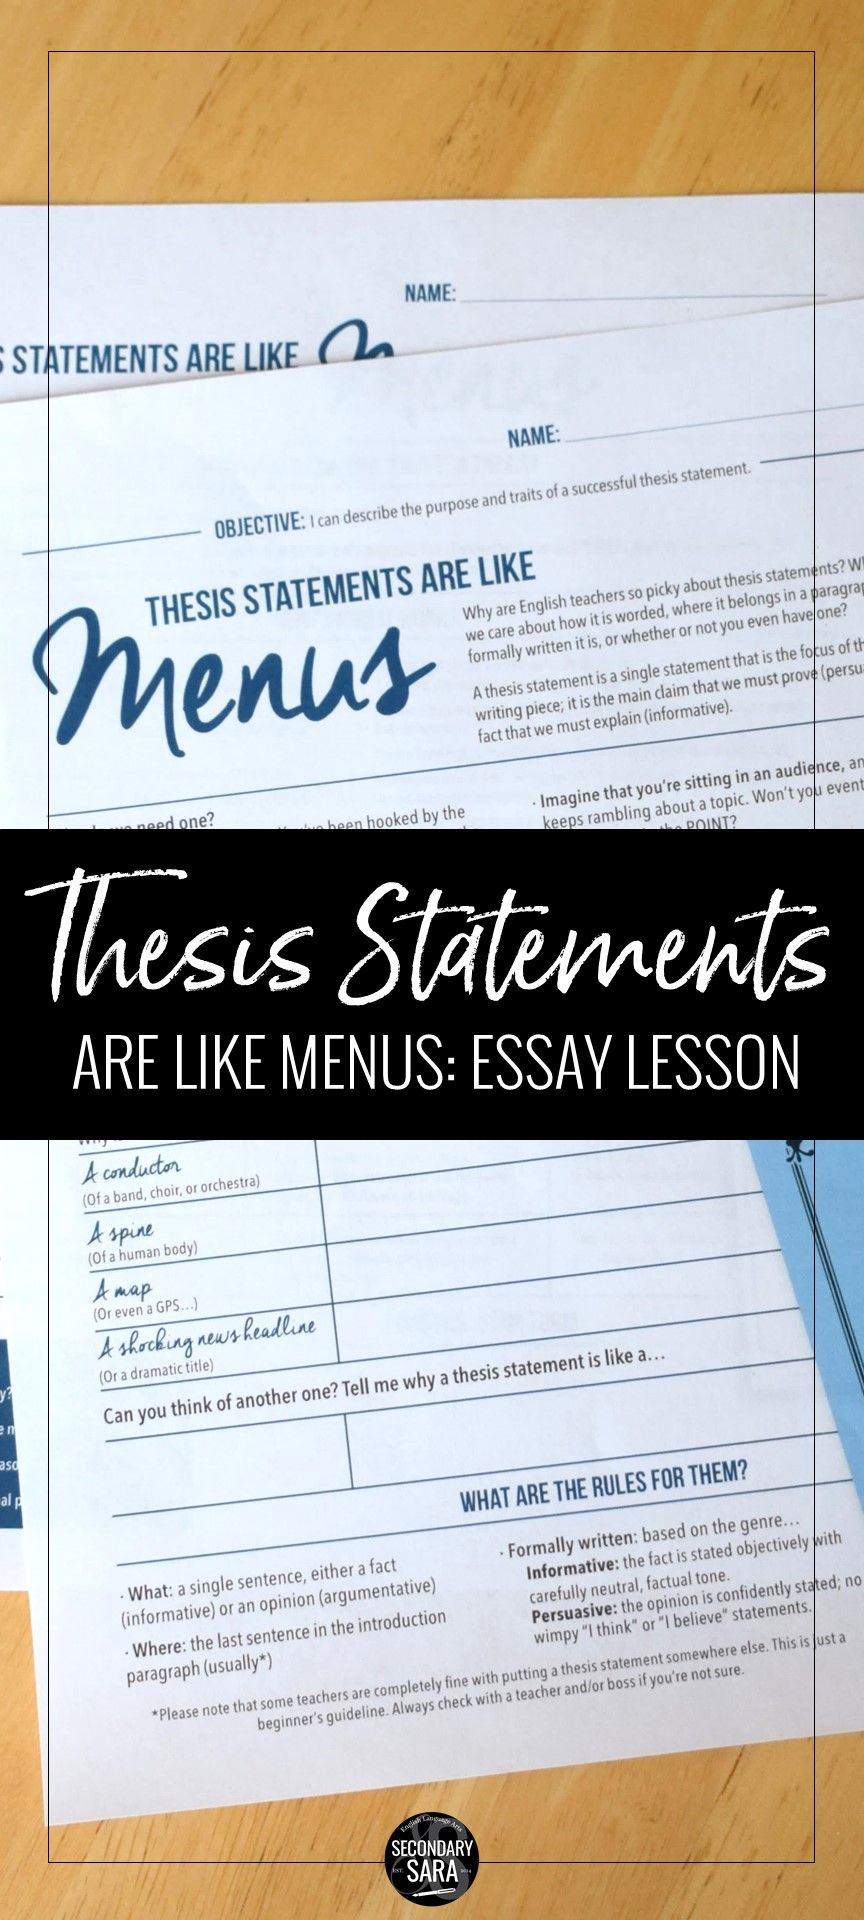 Thesis Statements Are Like Menus Minute Writing Lesson For Any  Thesis Statements Essay Writing Lesson For Middle School Or High School  English